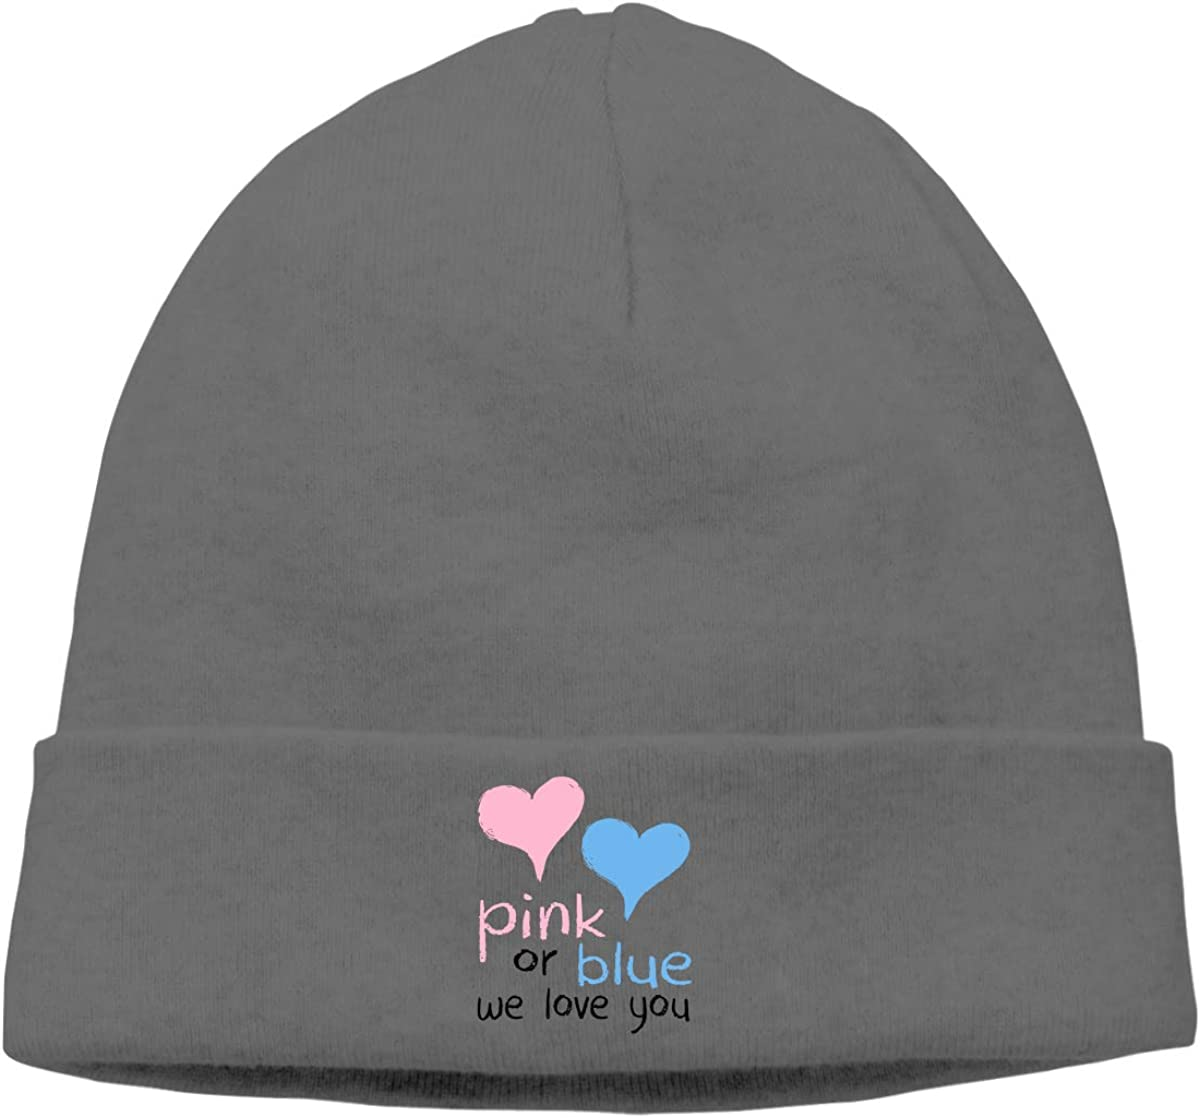 Just Cure It Leukemia Awareness Men /& Women Solid Color Beanie Hat Stretchy /& Soft Winter Cap Thin